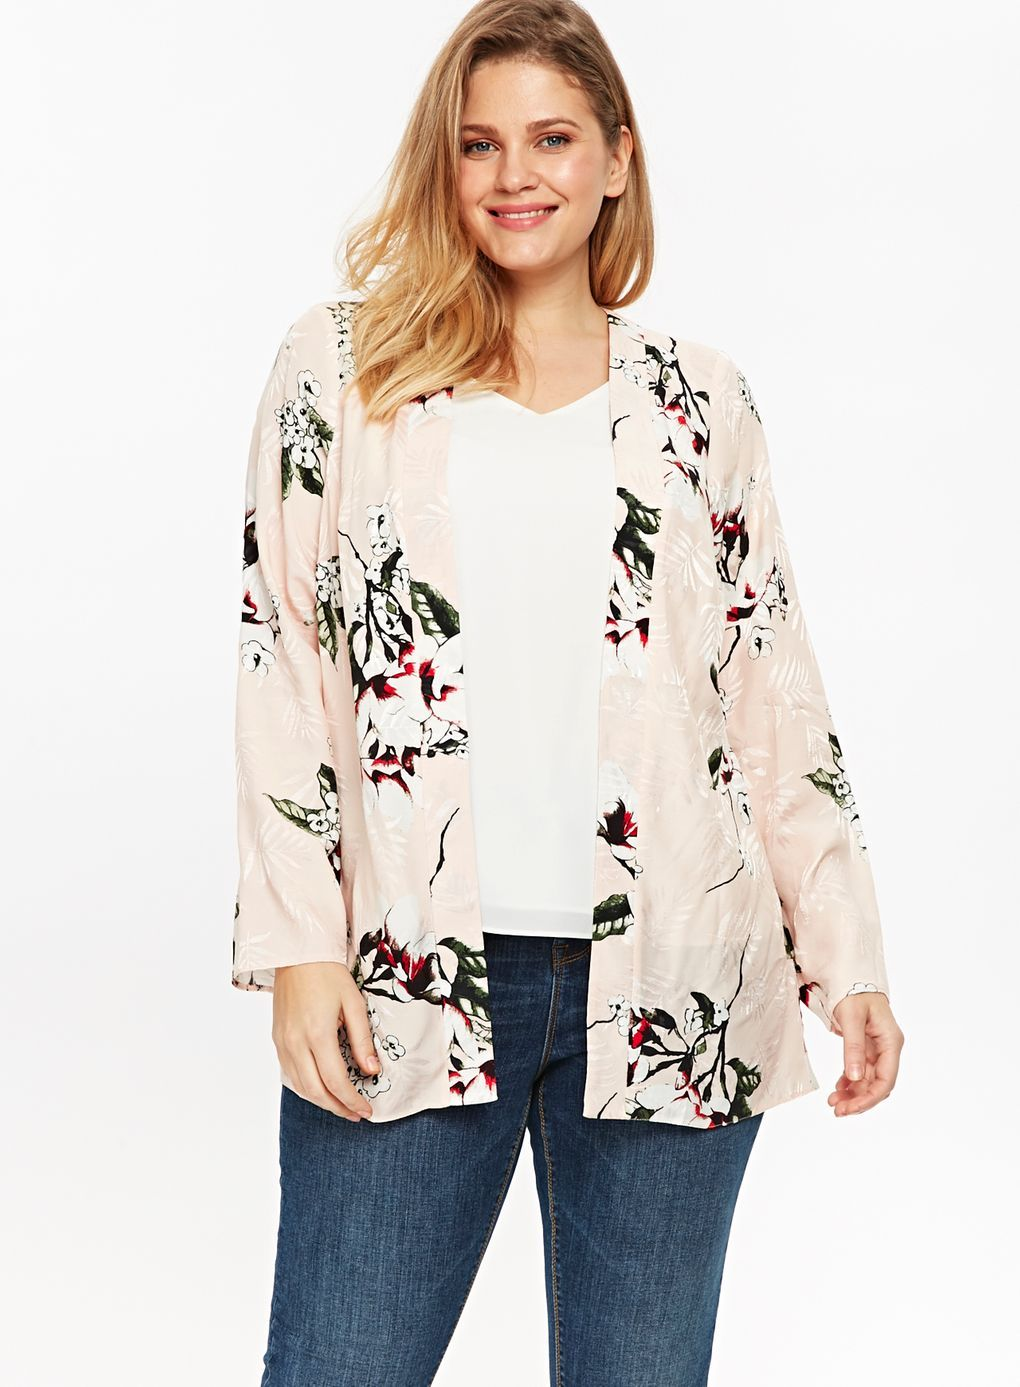 Womens Butterfly Twinkle Kimono Blouse EVANS Good Selling For Sale p717MDM